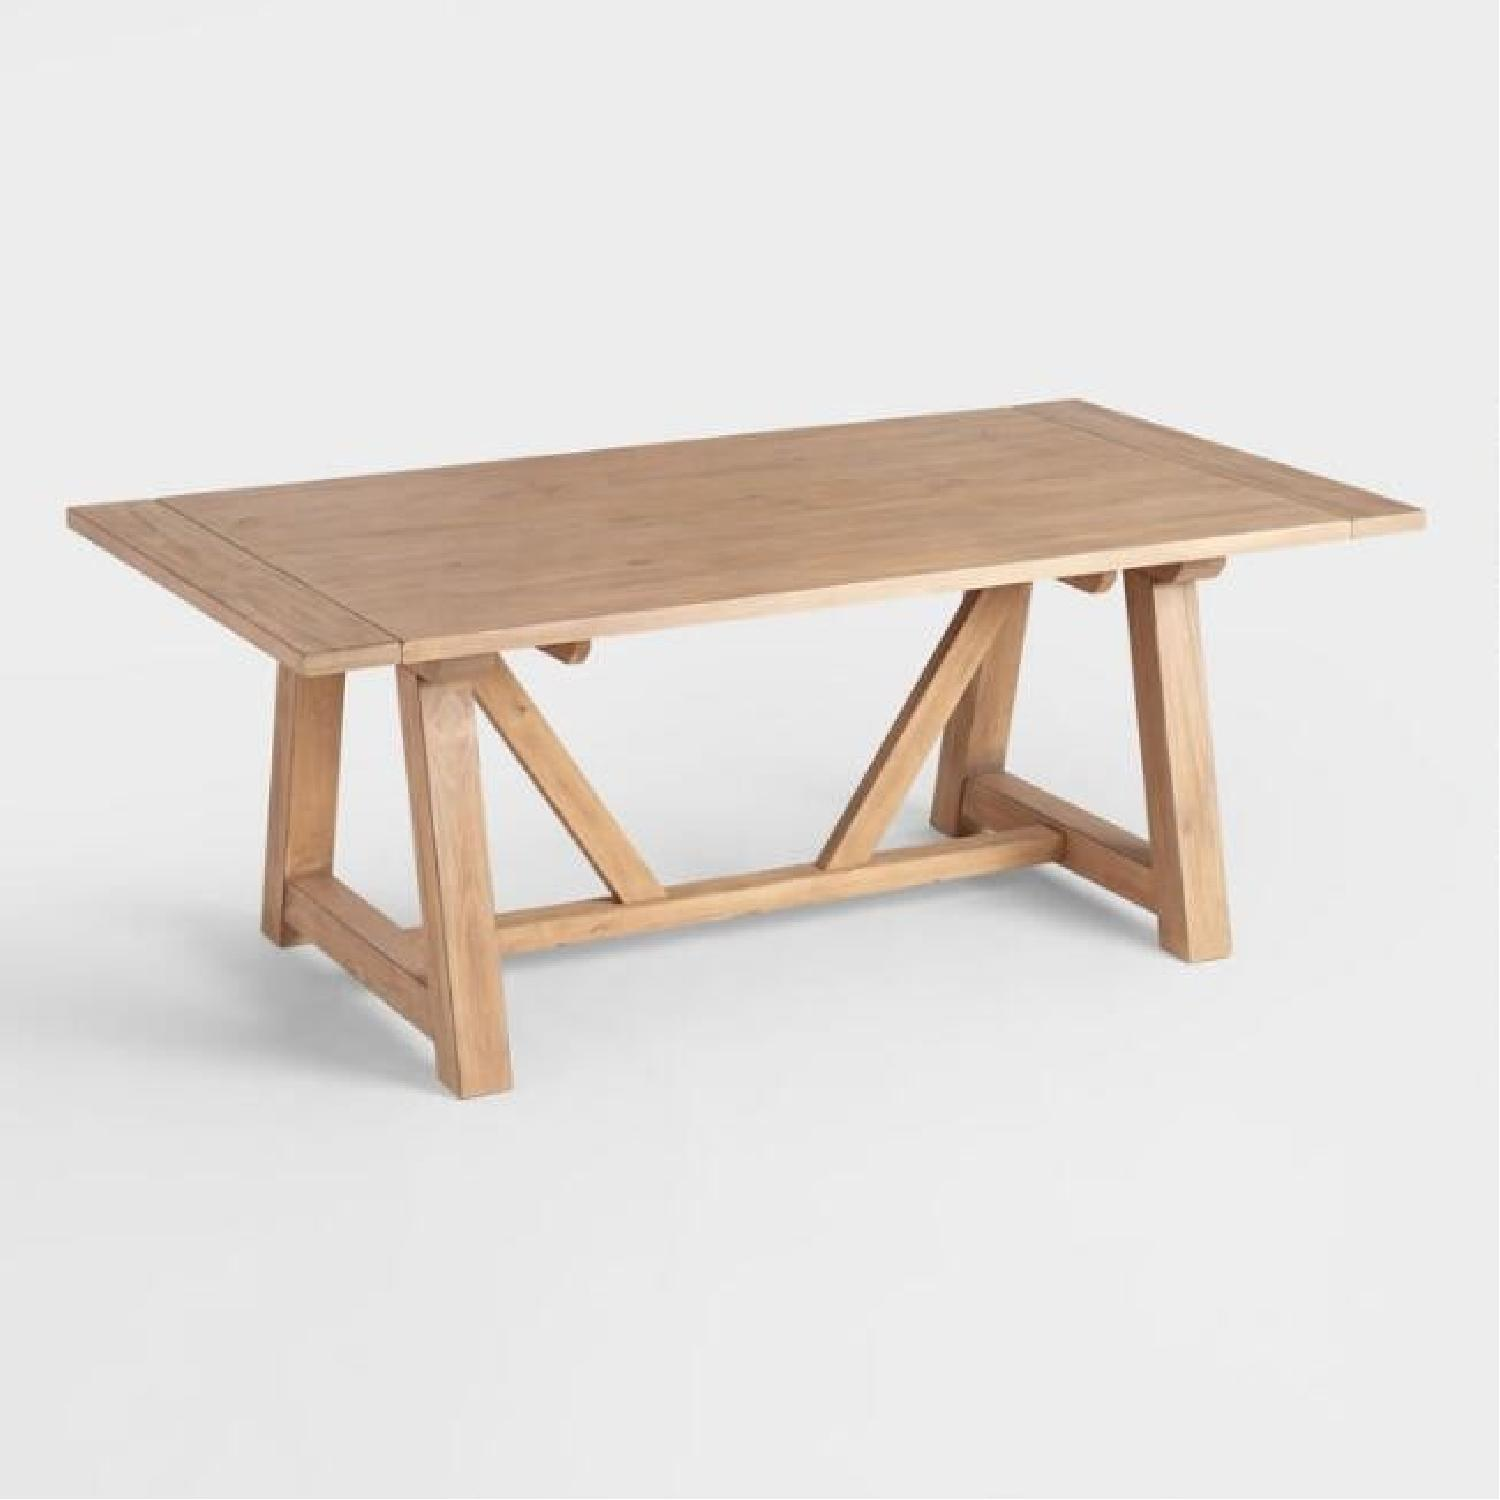 World Market Farmhouse Extension Dining Table - image-2